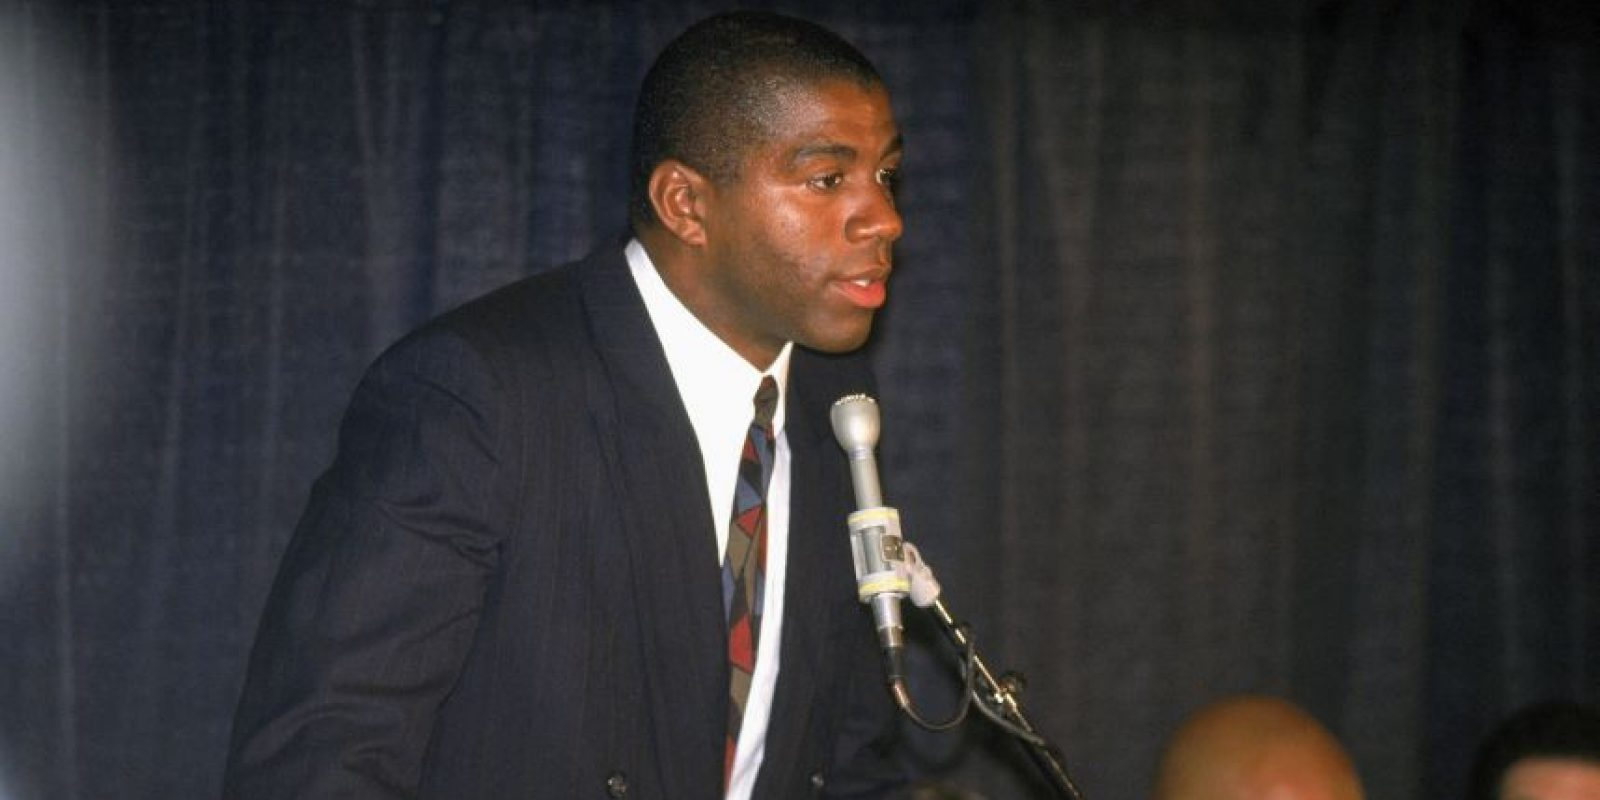 El momento del anuncio de Magic Johnson Foto: Getty Images